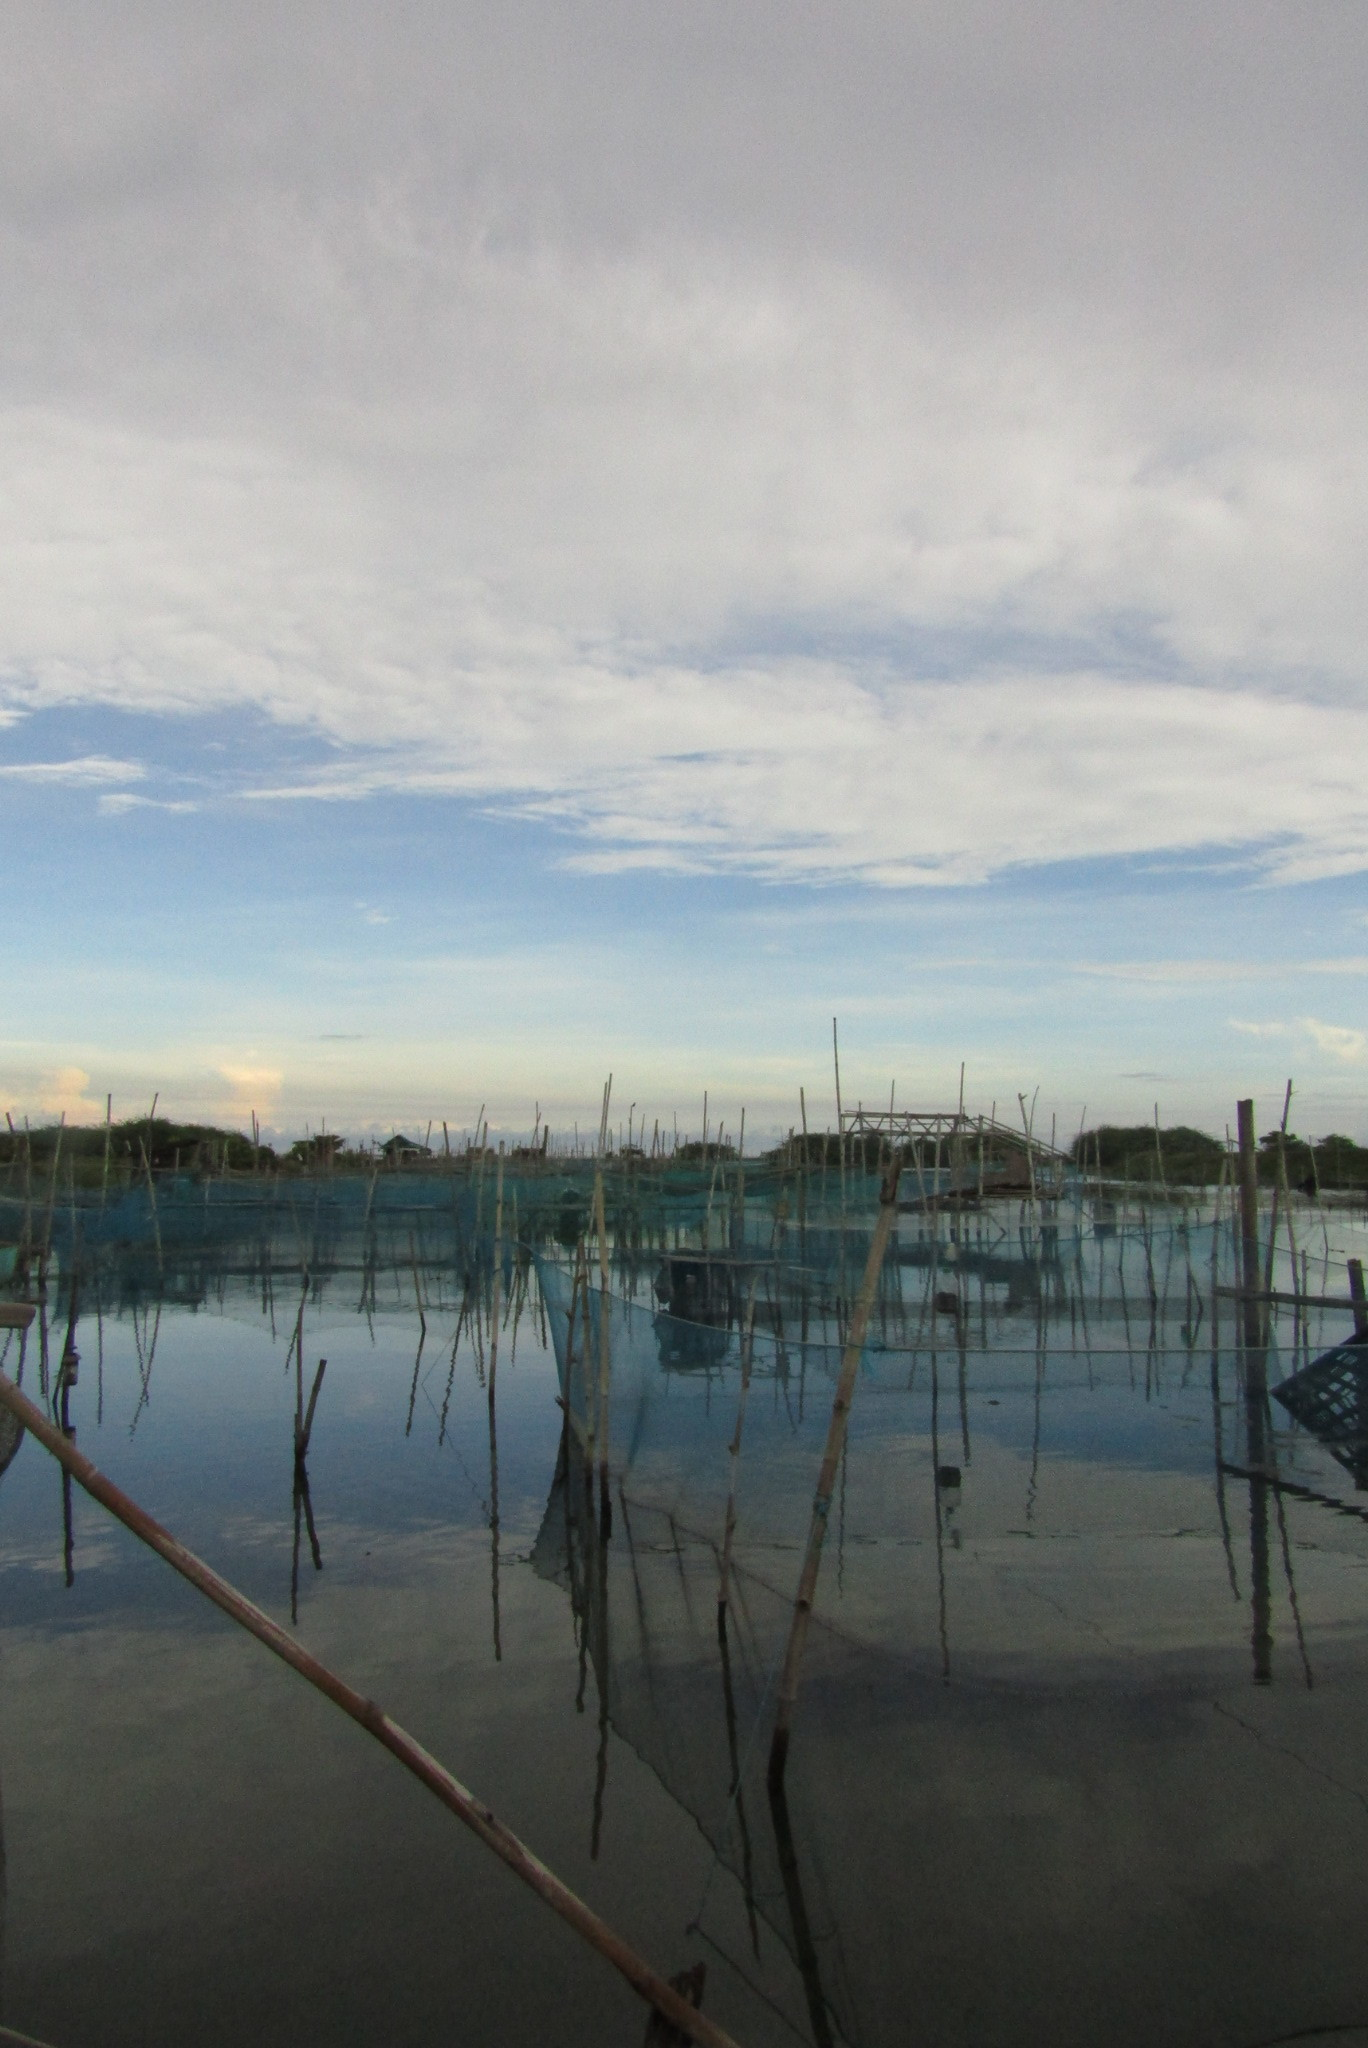 Fish pens in Vigan City, along the Mindoro River